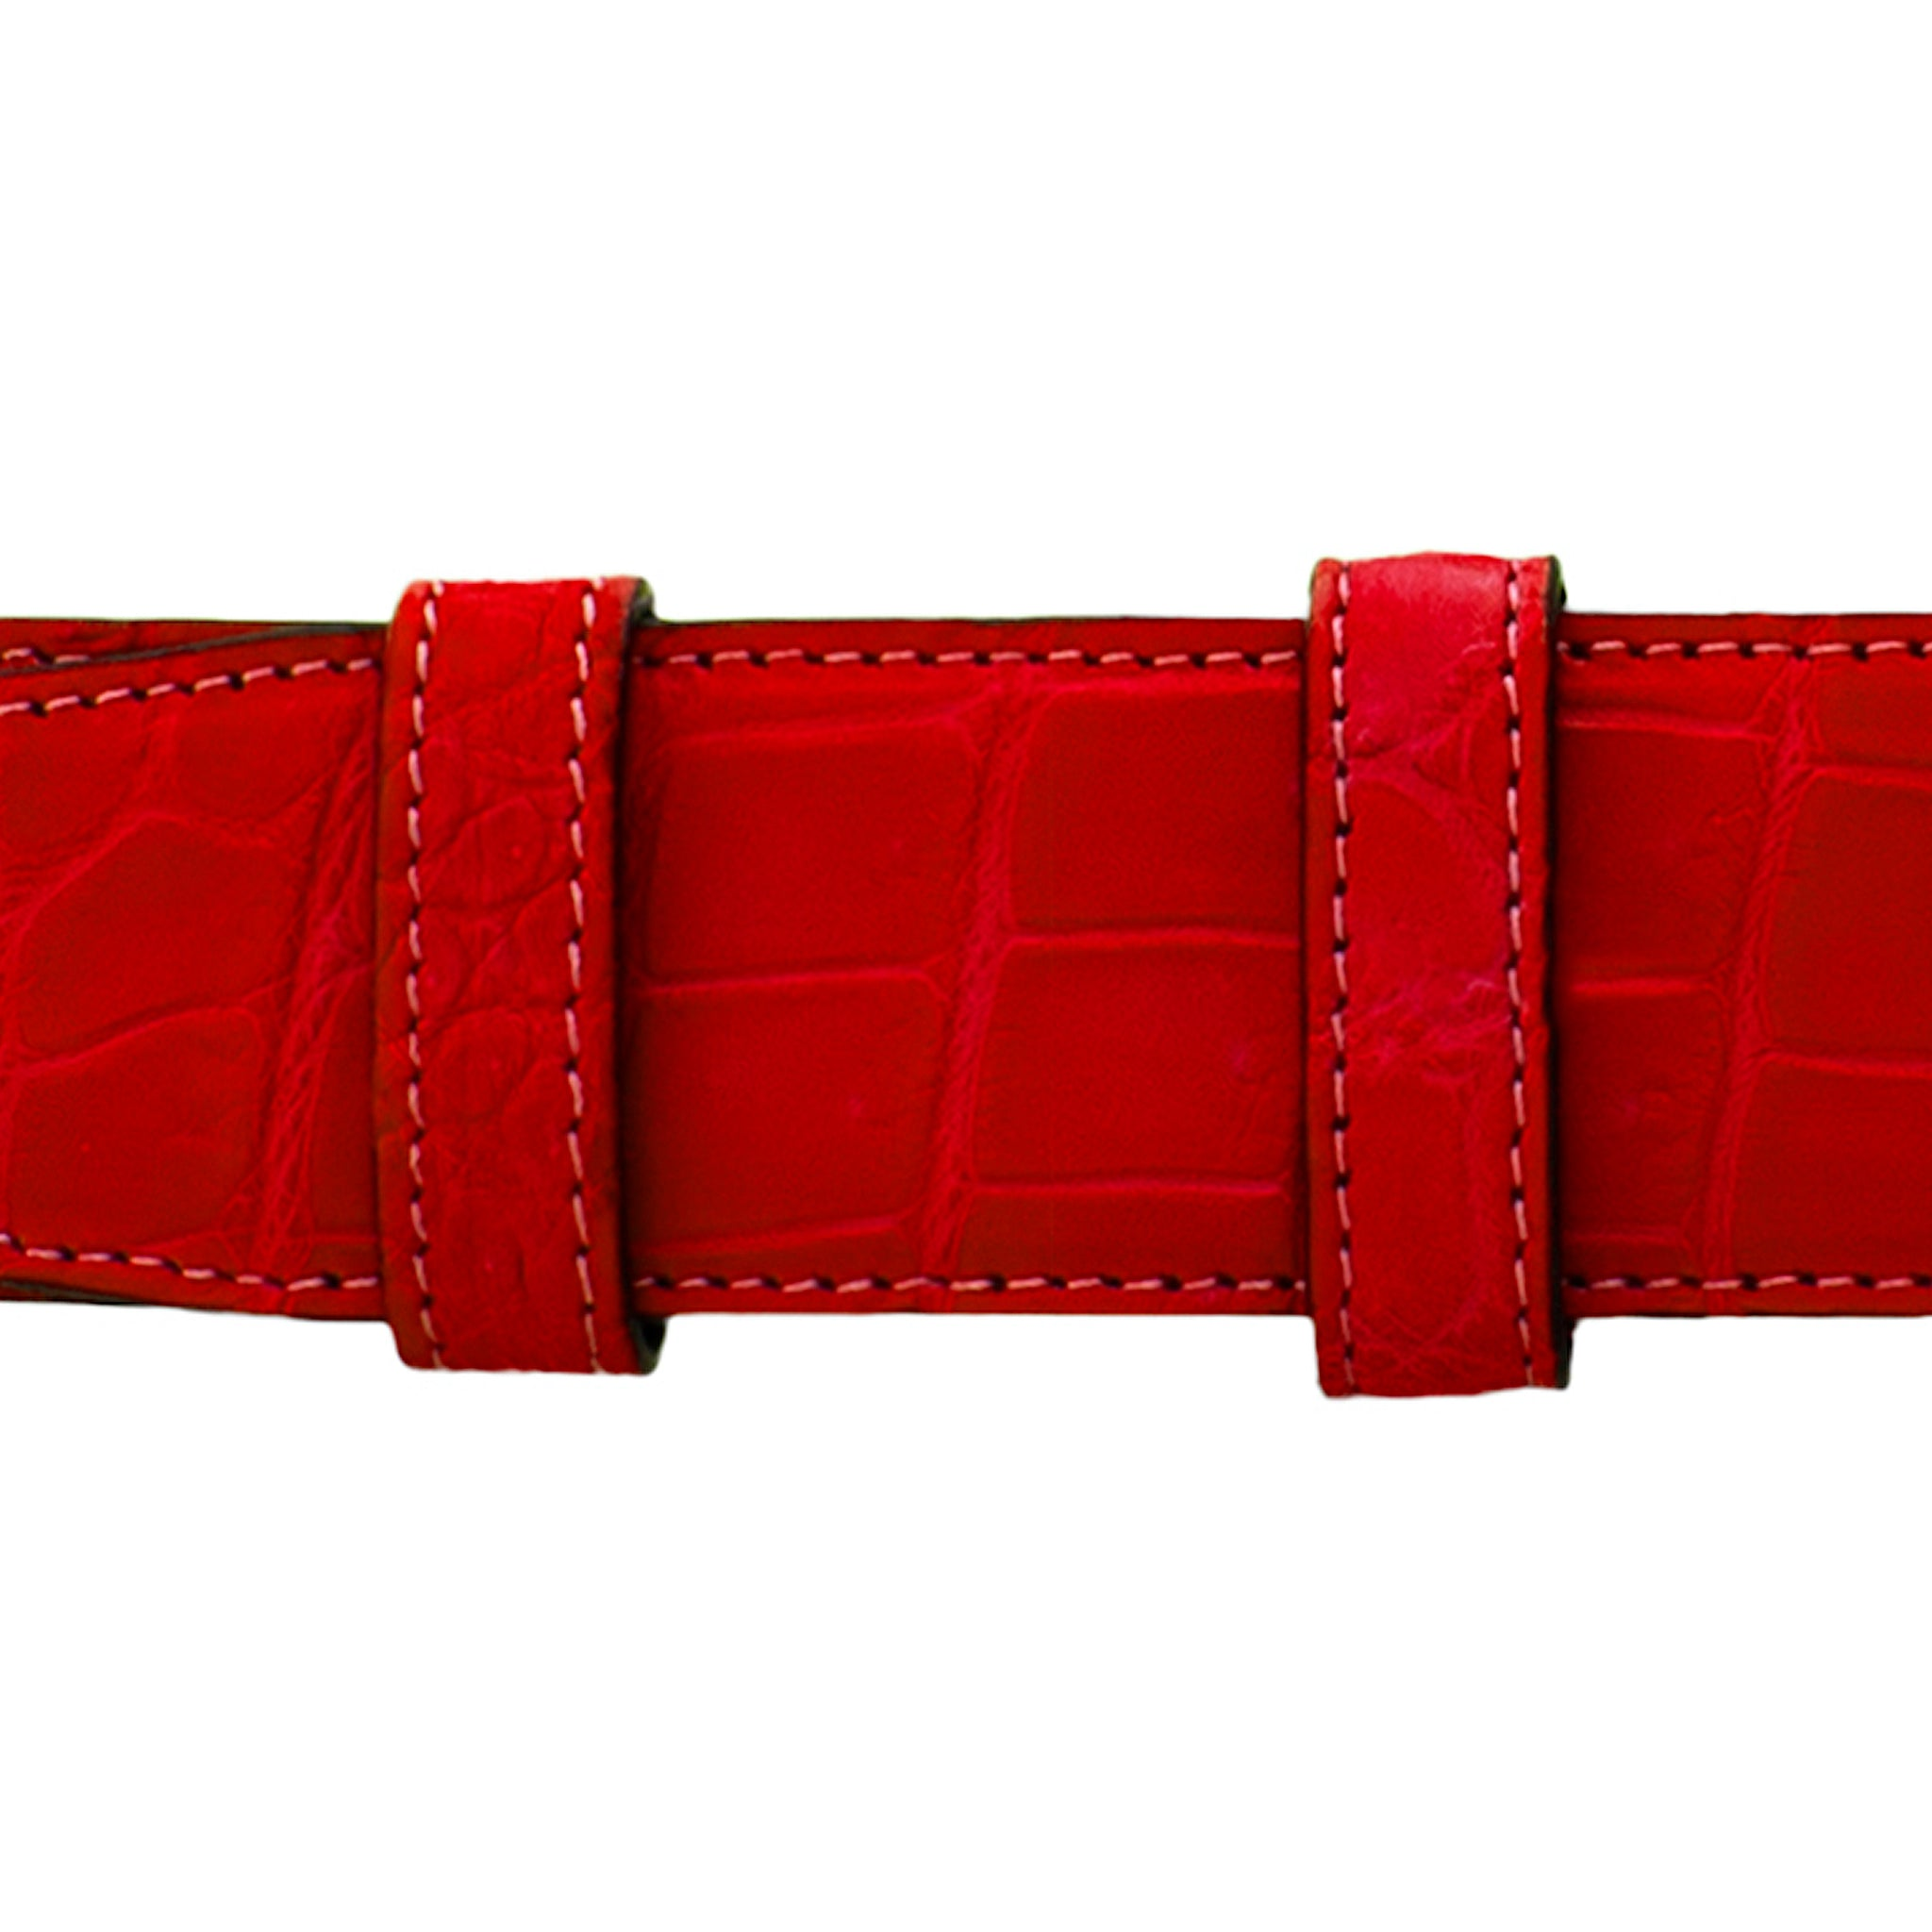 "1 1/2"" Candy Seasonal Belt with Winston Dress Buckle in Matt Nickel"